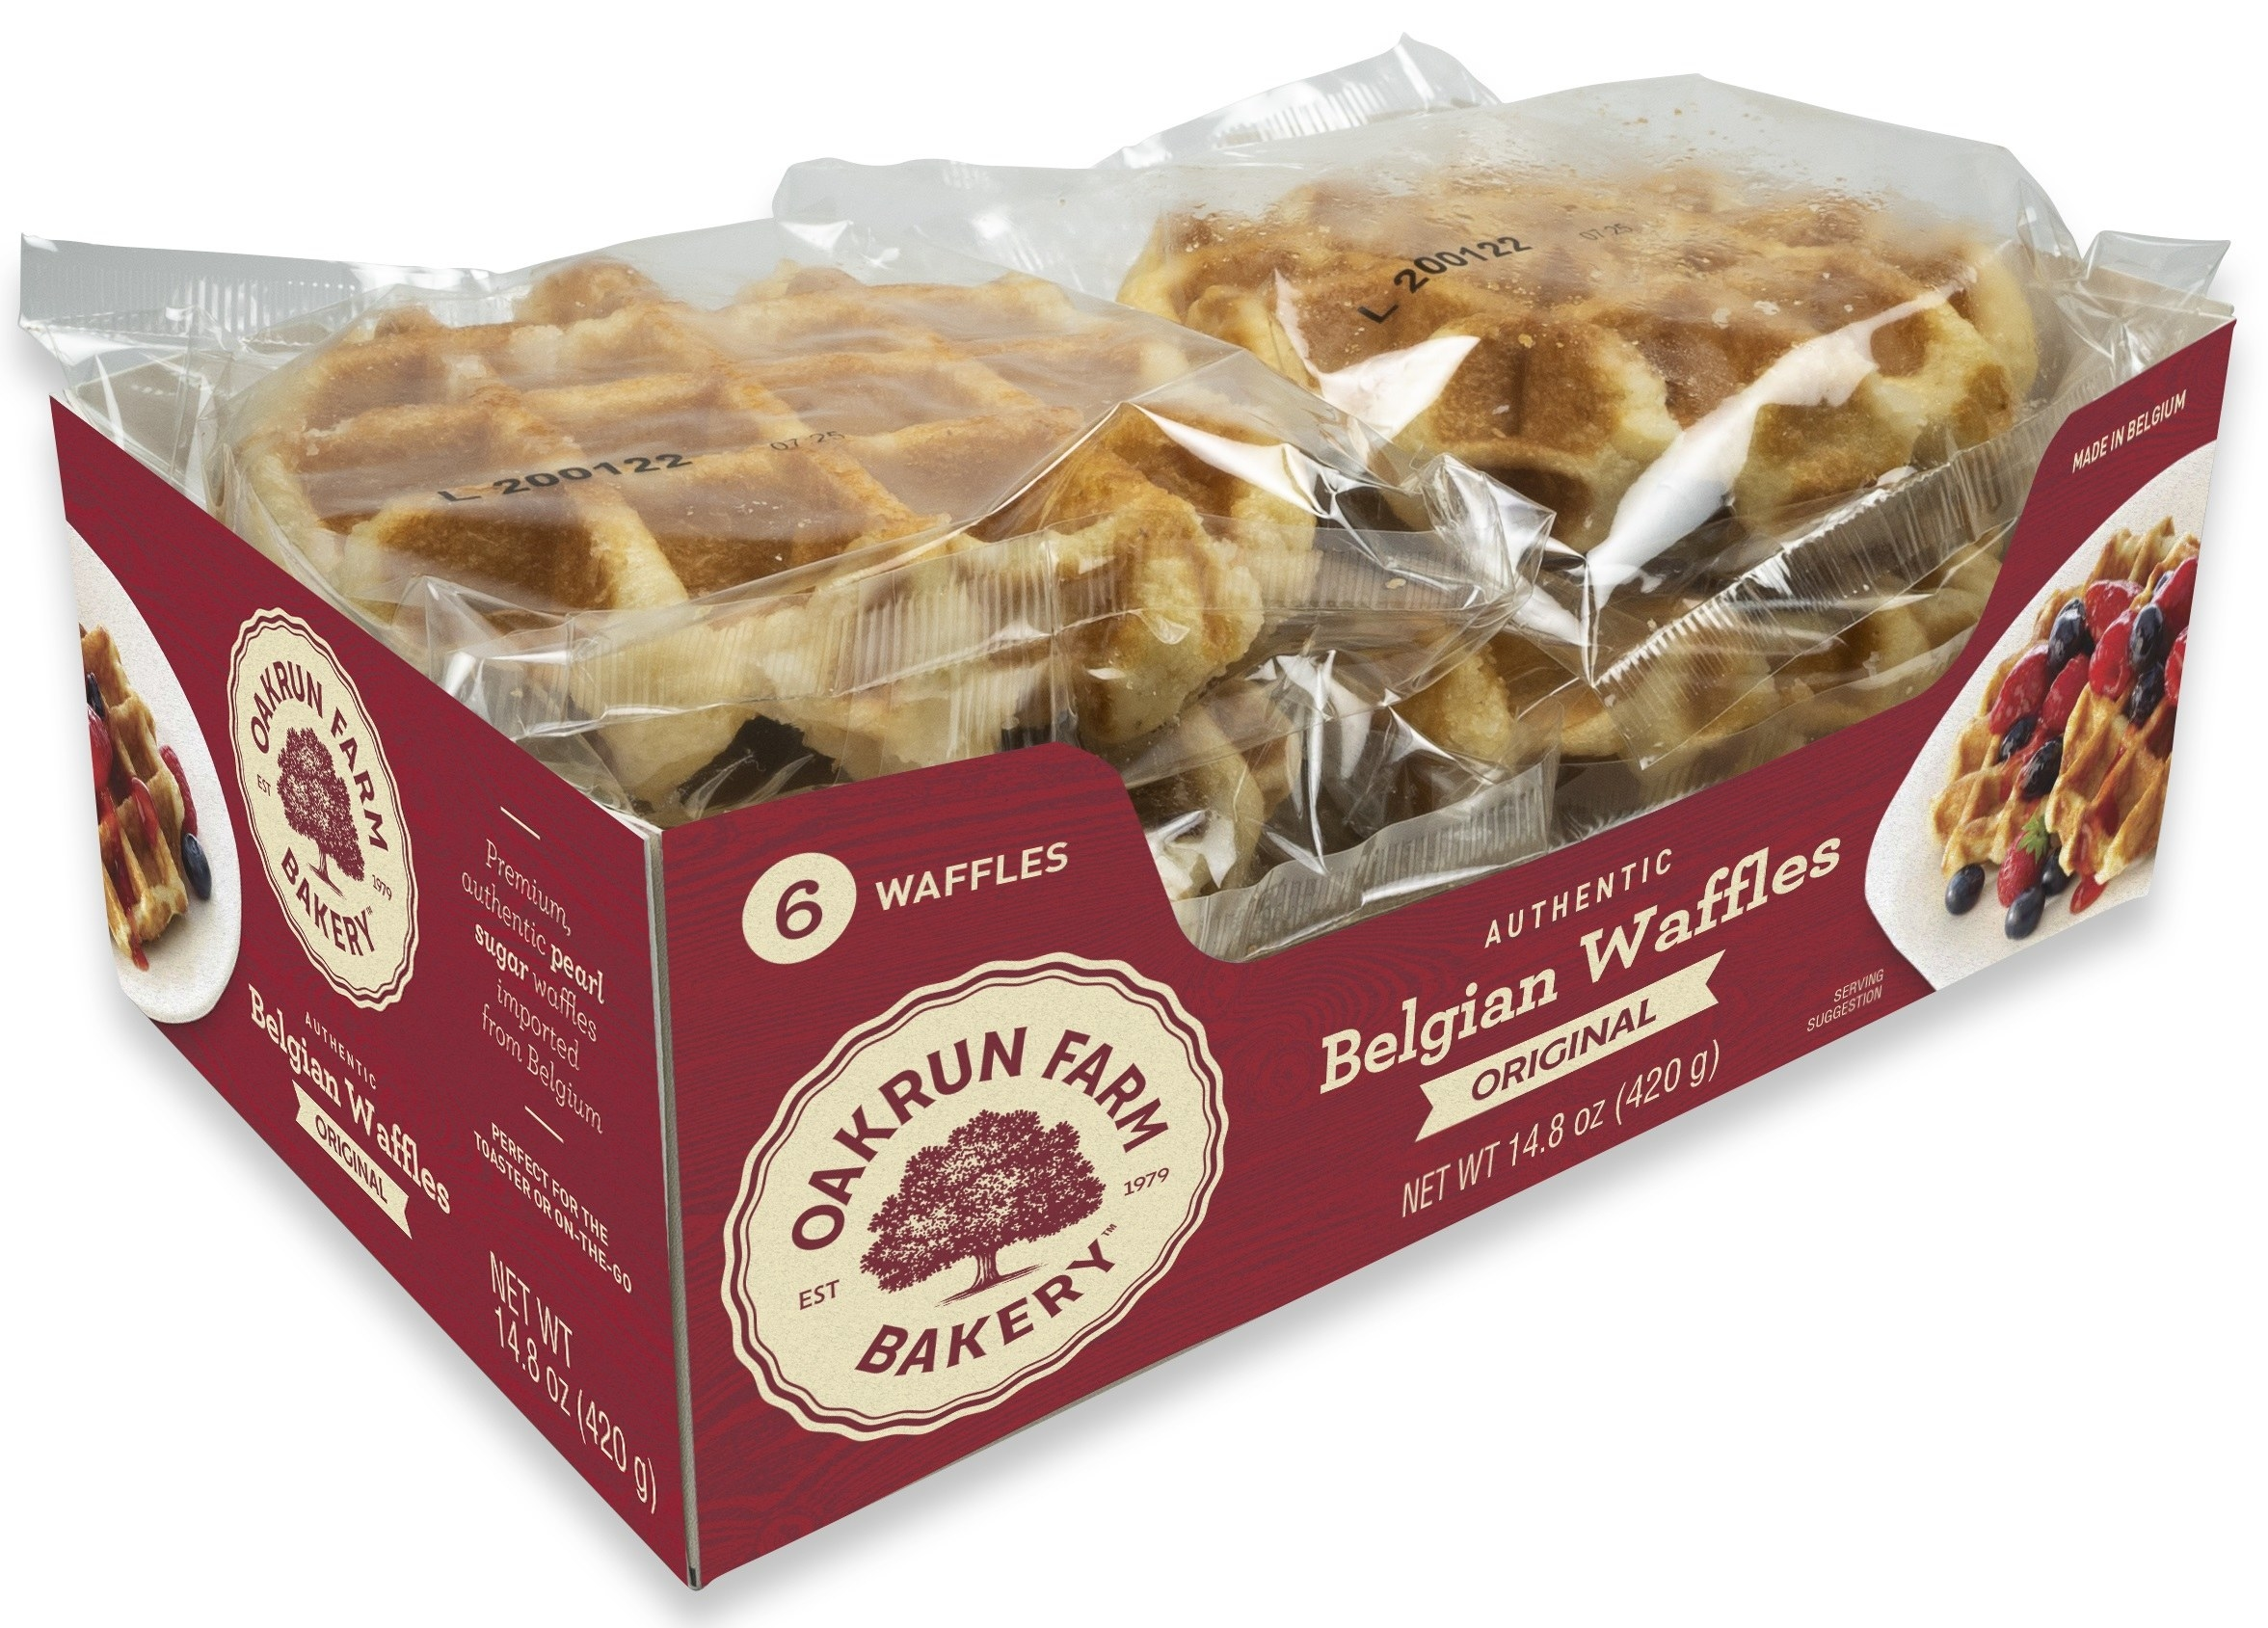 Pack of 6 individually wrapped Belgian waffles